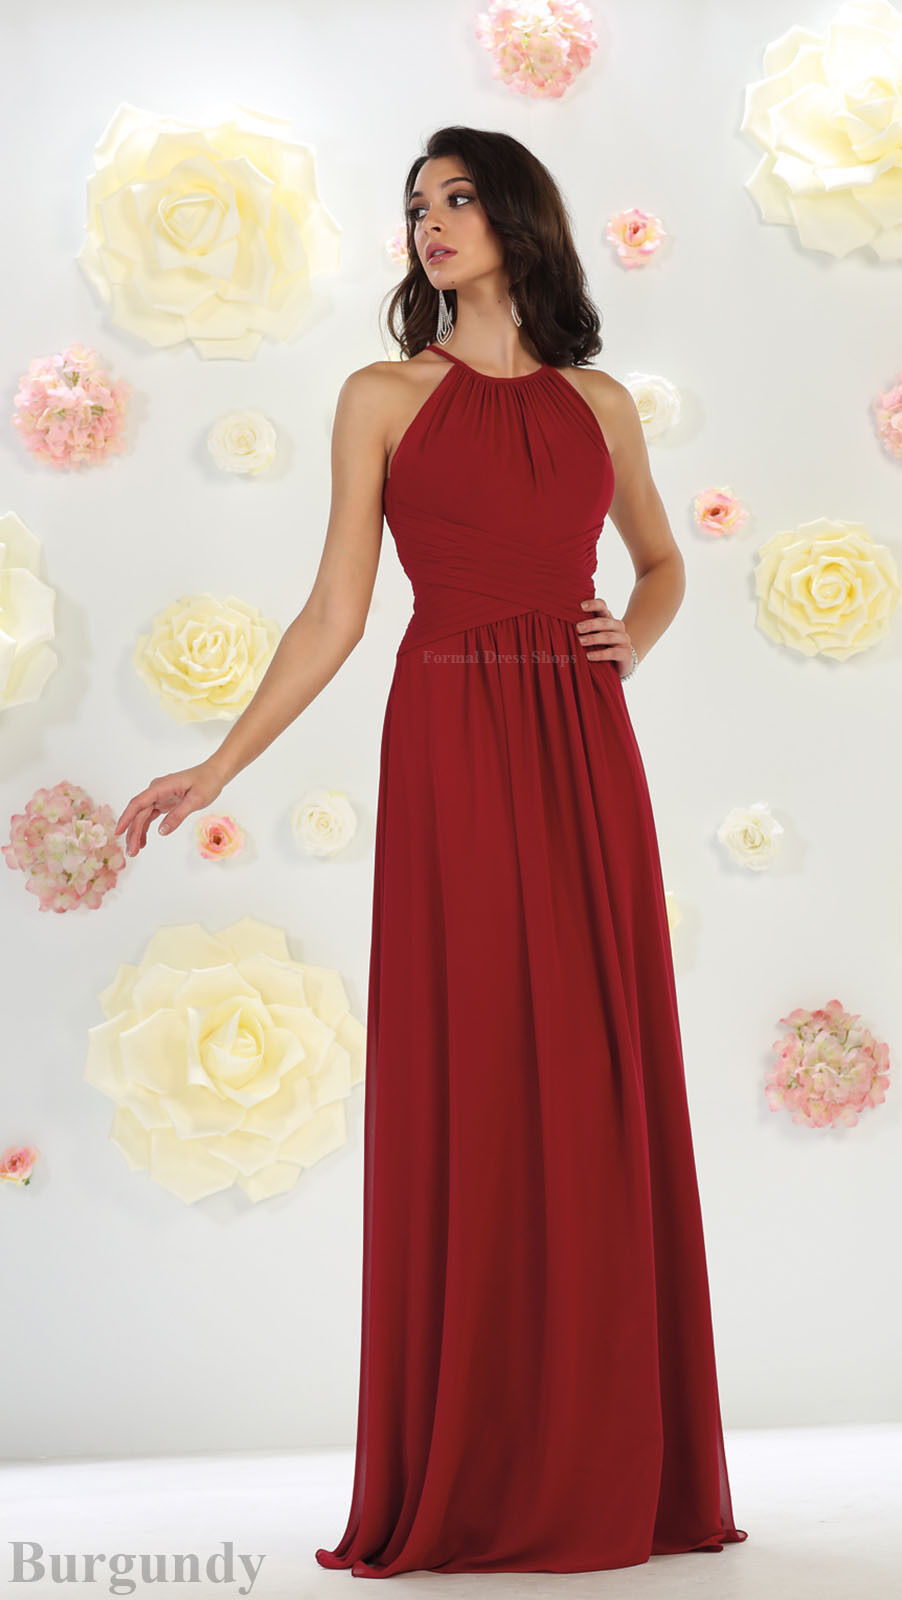 Bridesmaids Dresses Under $ If you were recently asked to be a bridesmaid, or if you're a bride planning a trip down the aisle in the near future, not only is it an exciting time in general, if you're on the hunt for a bridesmaid dress on sale, you're really in luck.